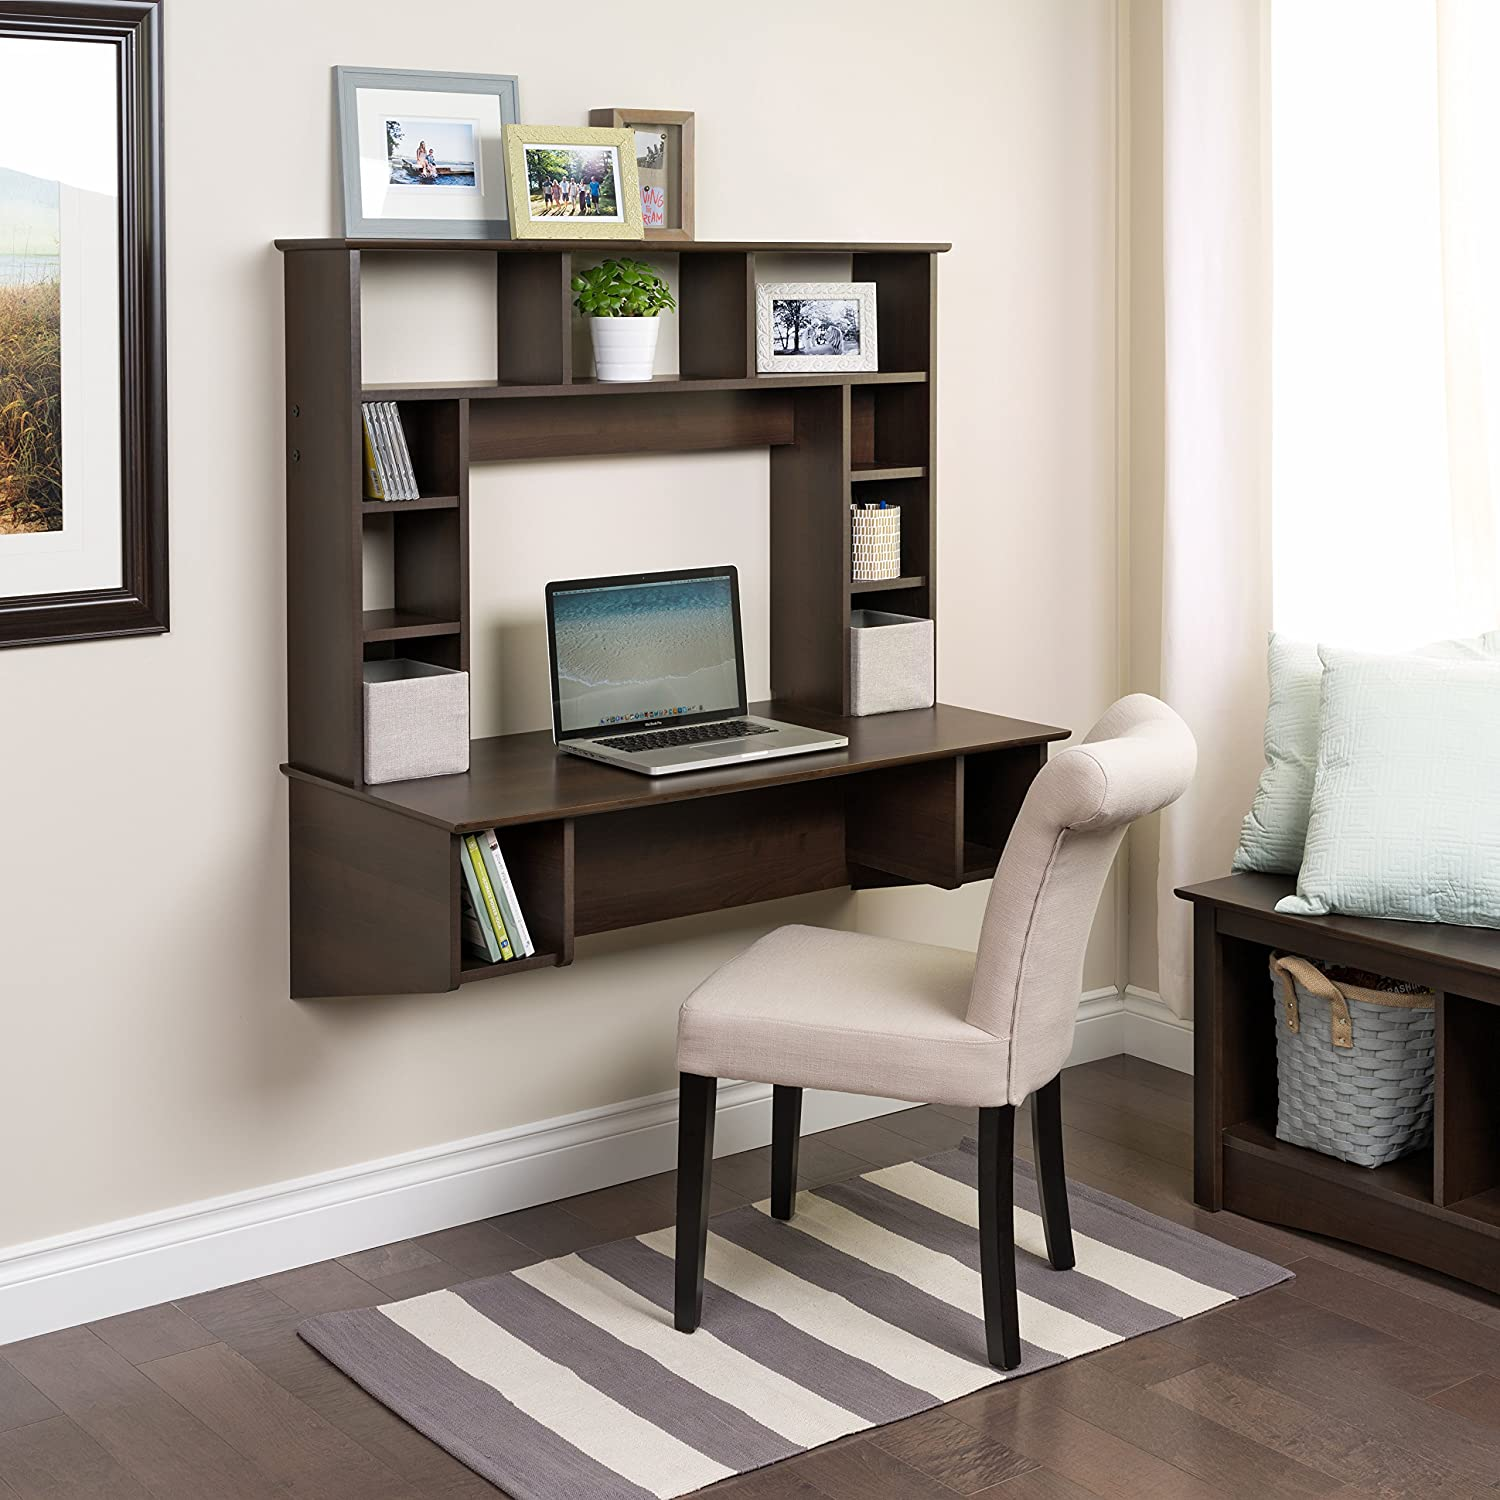 small home office try a standing floating wall desk - standing floating wall desk in small home office